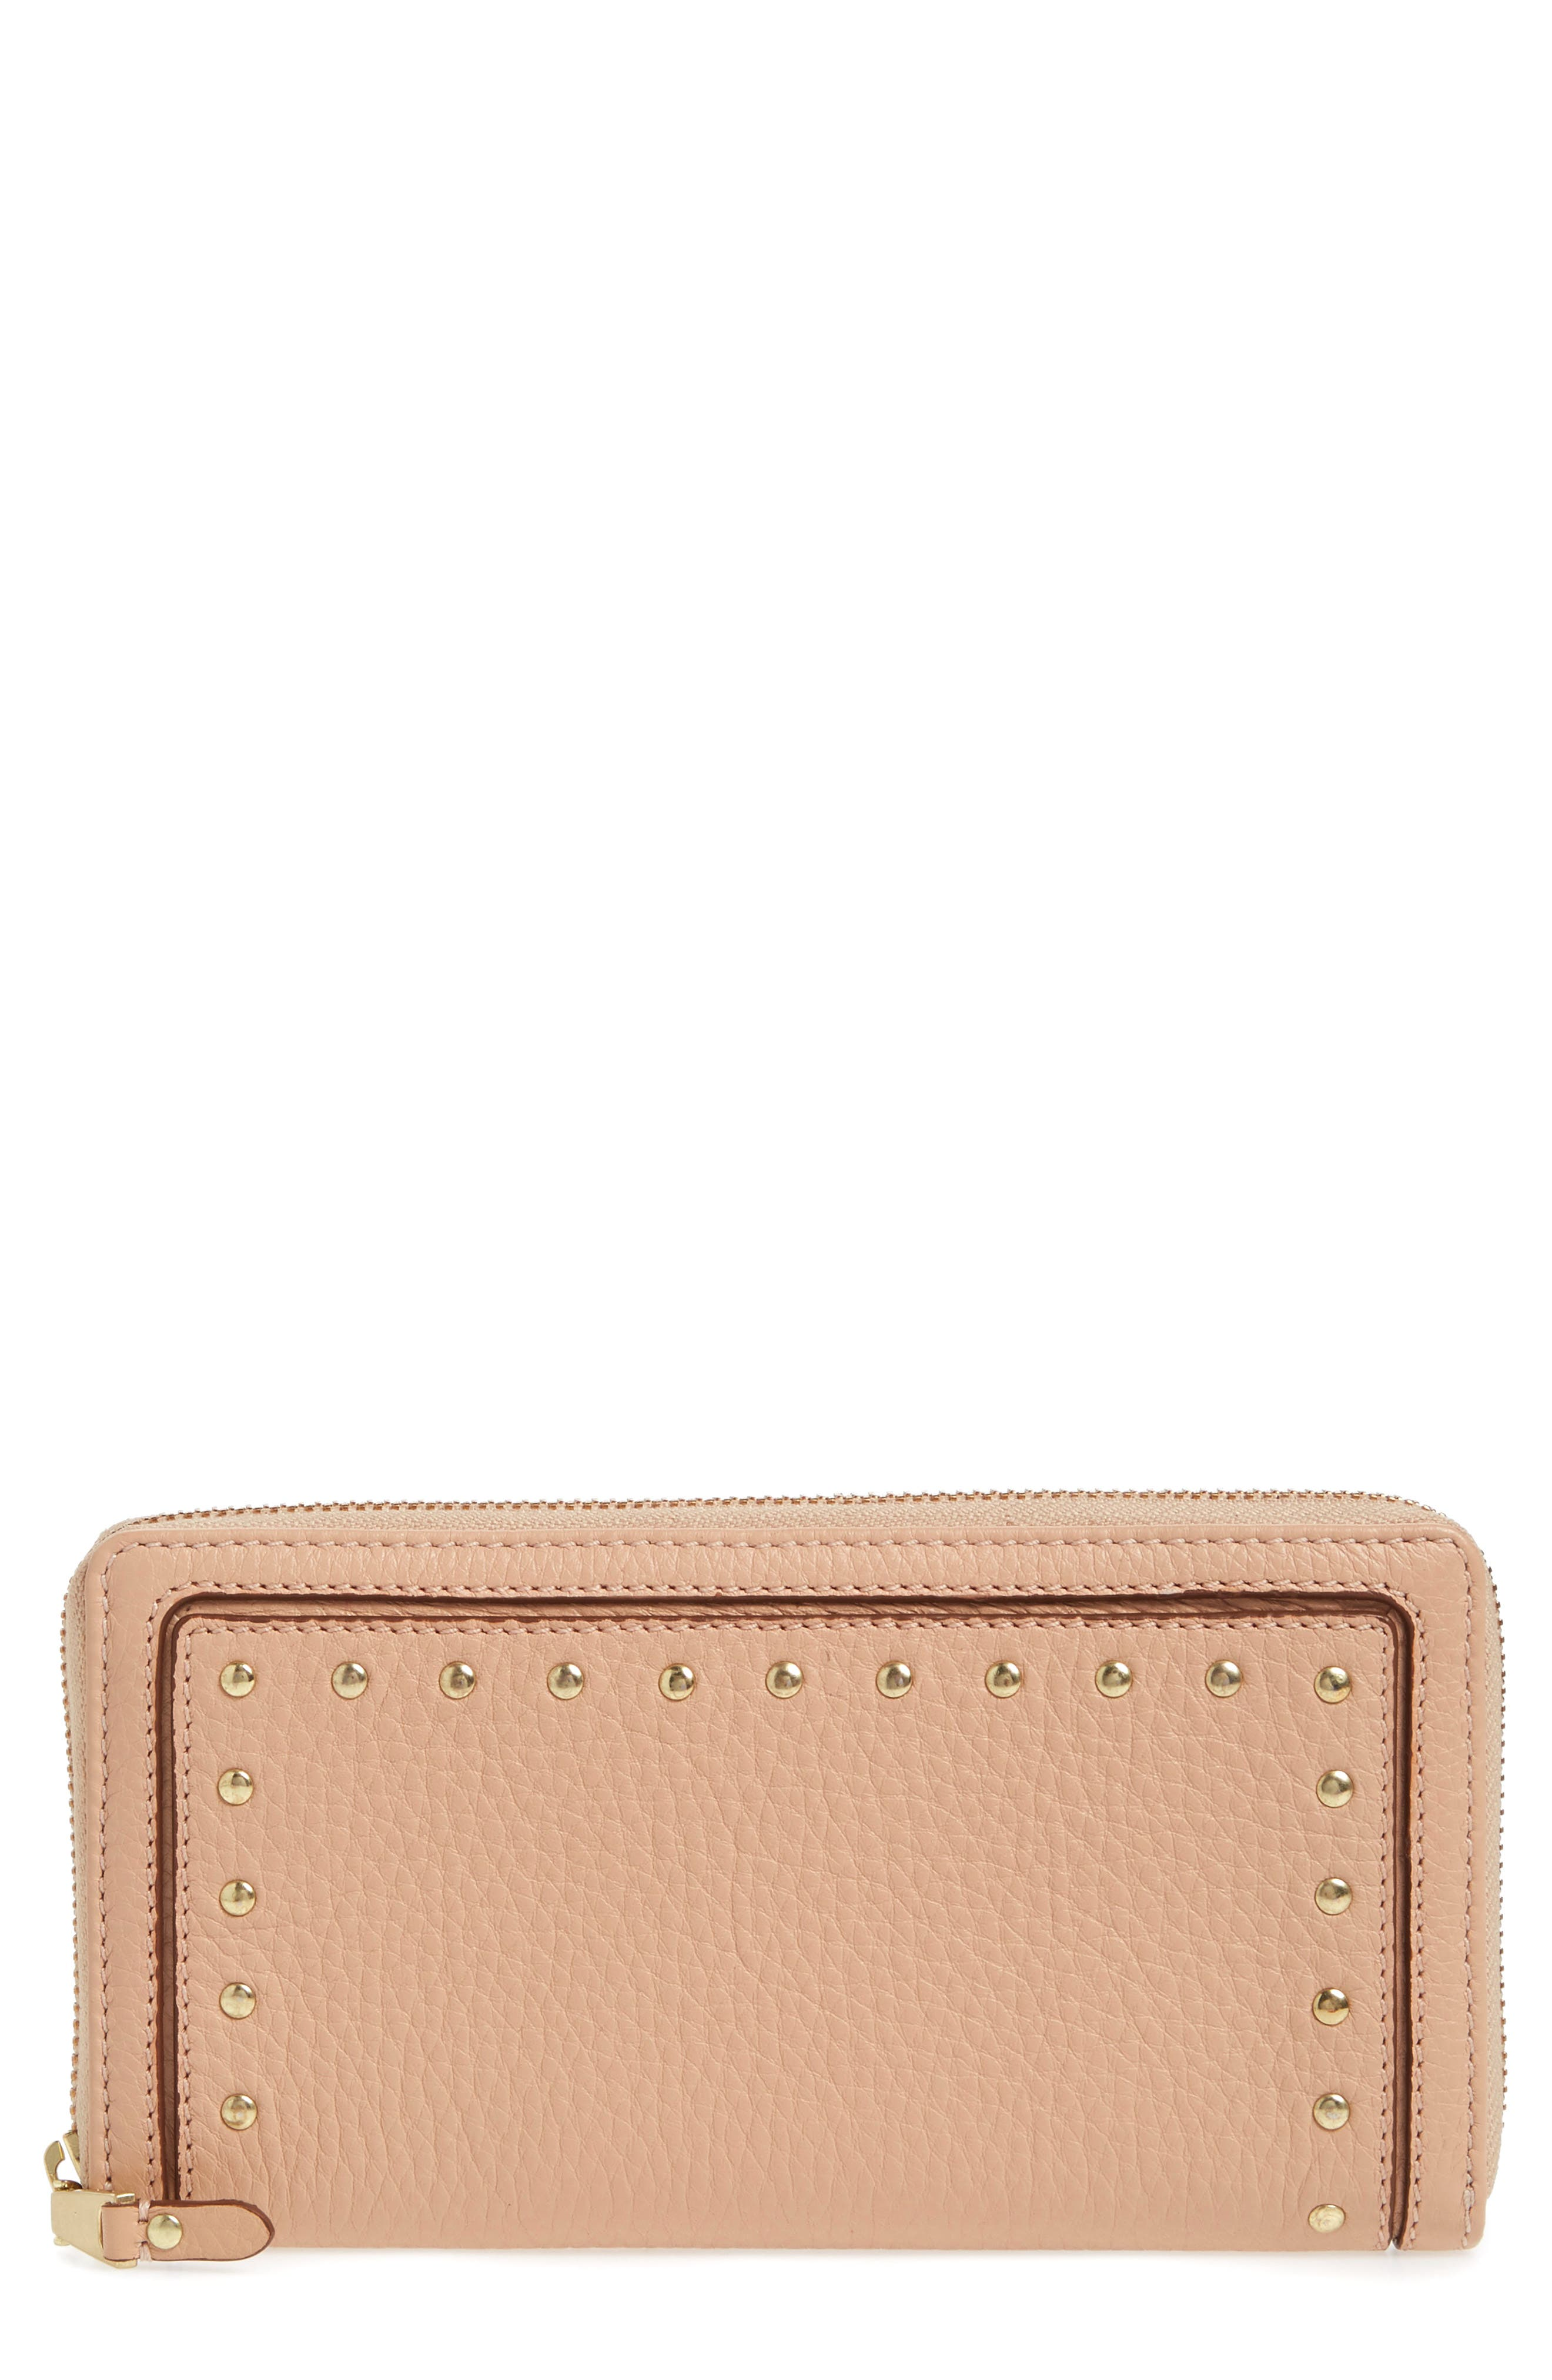 Cassidy Leather RFID Continental Zip Wallet,                             Main thumbnail 1, color,                             Nude